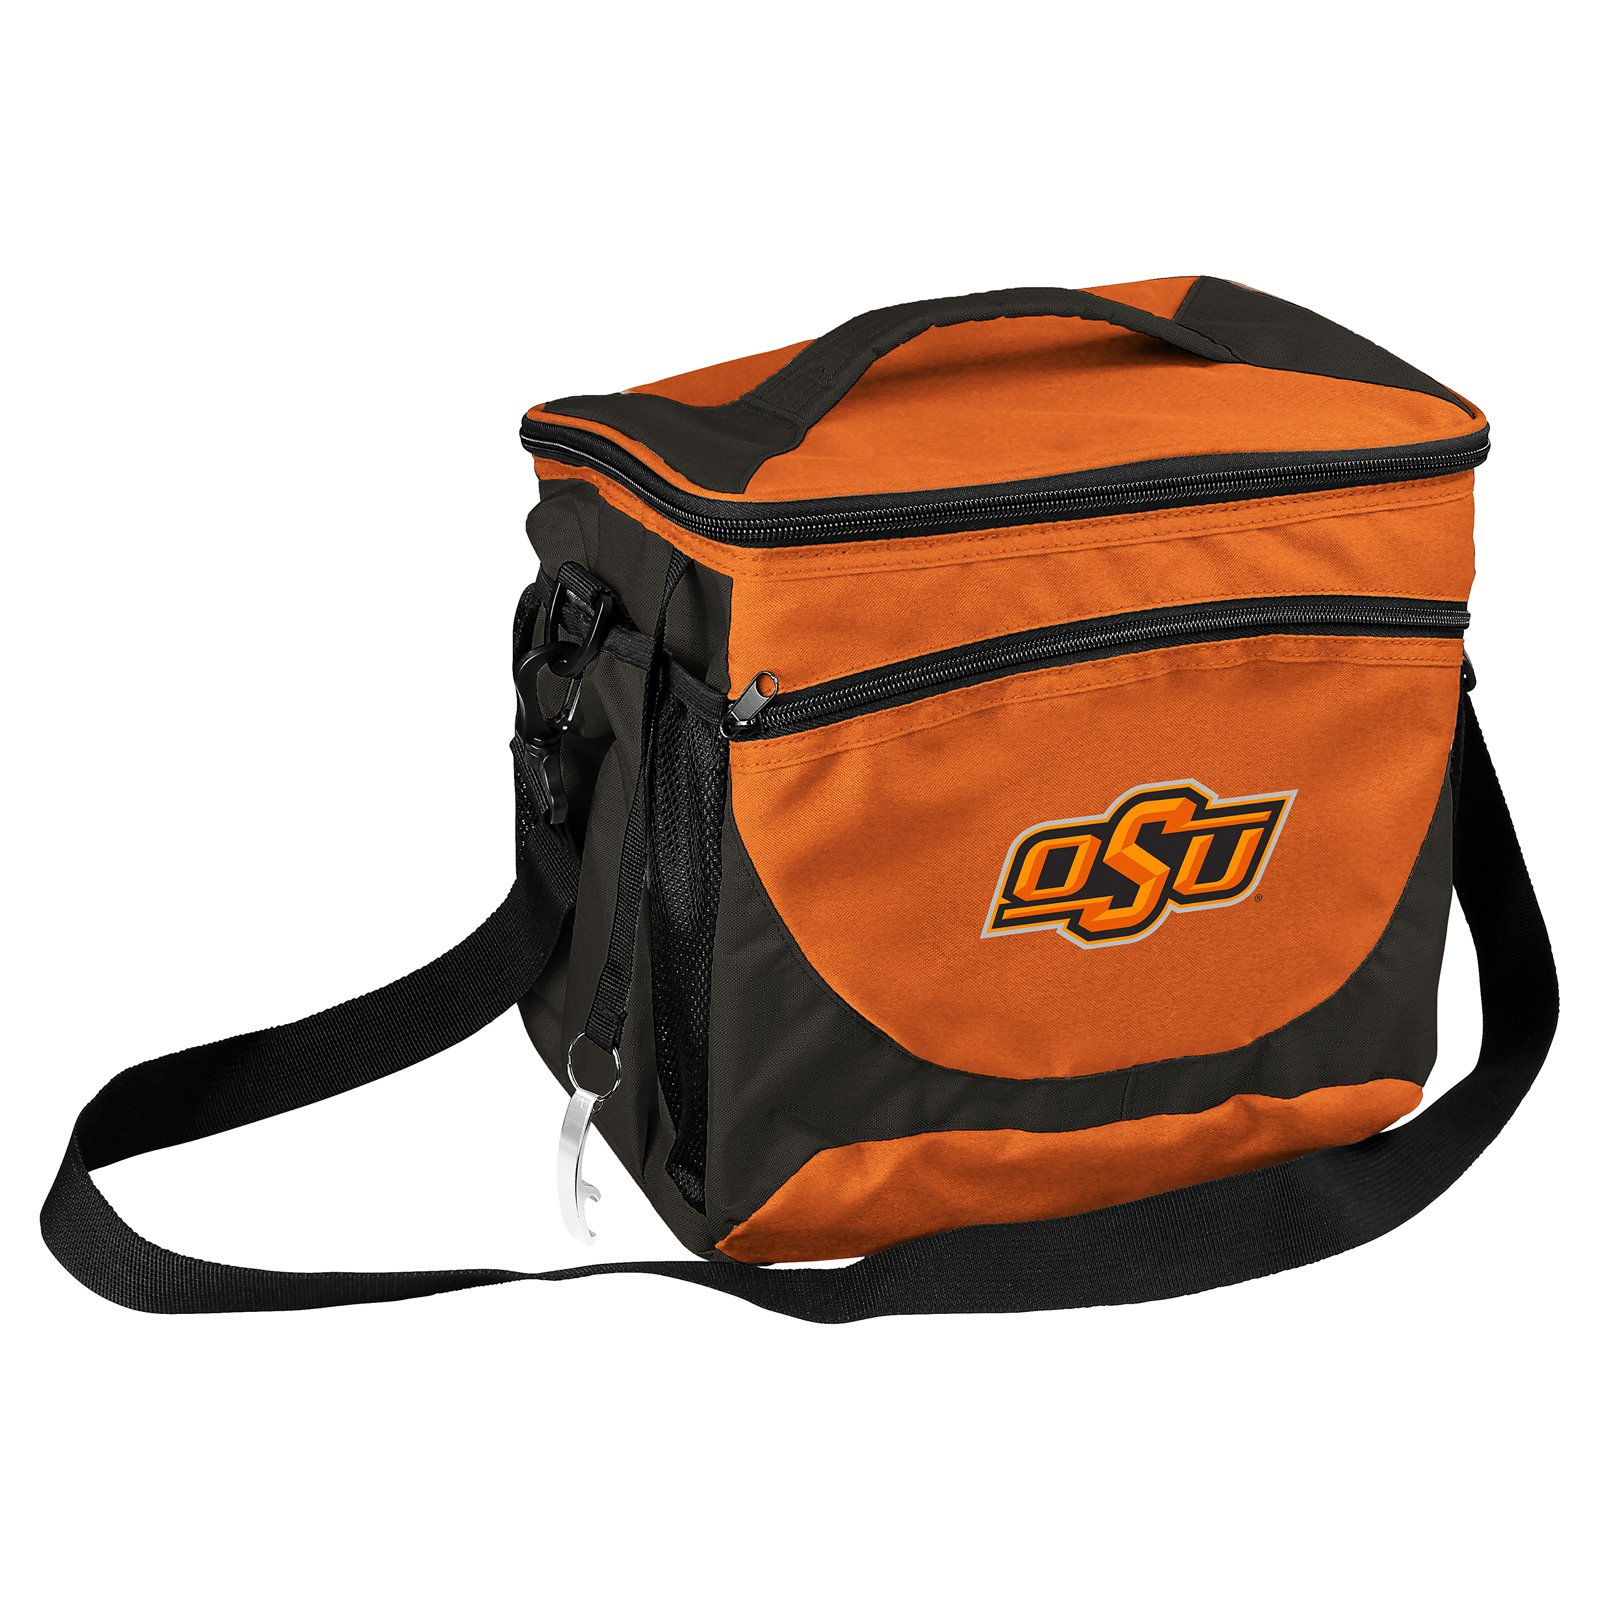 OK State 24-Can Cooler